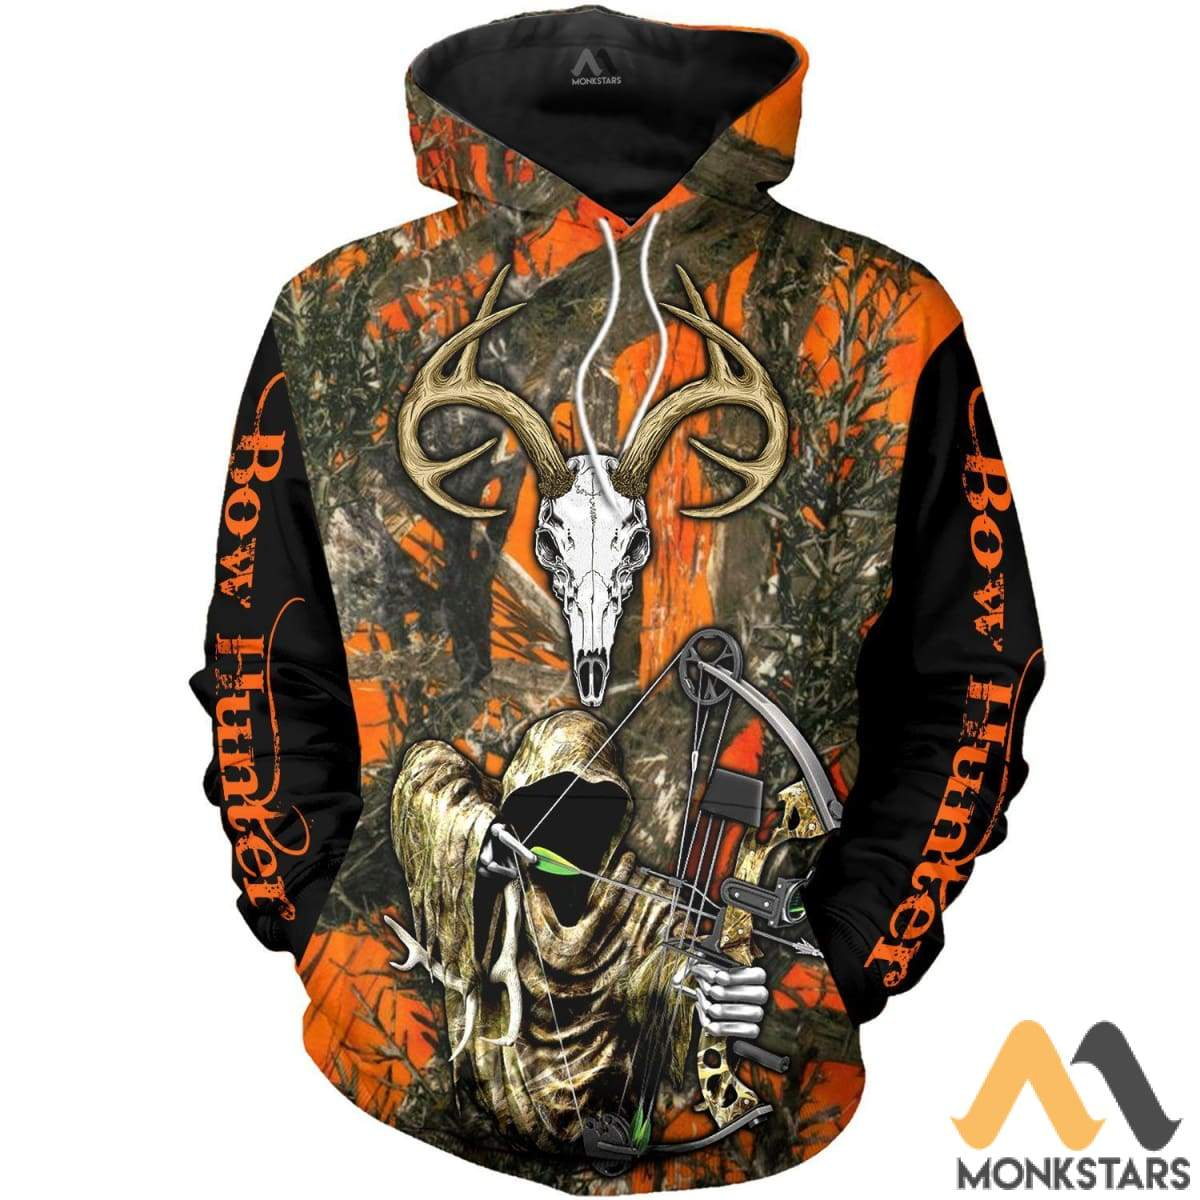 Grim Reaper Bow Hunter Camo 3D All Over Printed Shirts For Men & Women Hoodie / S Clothes